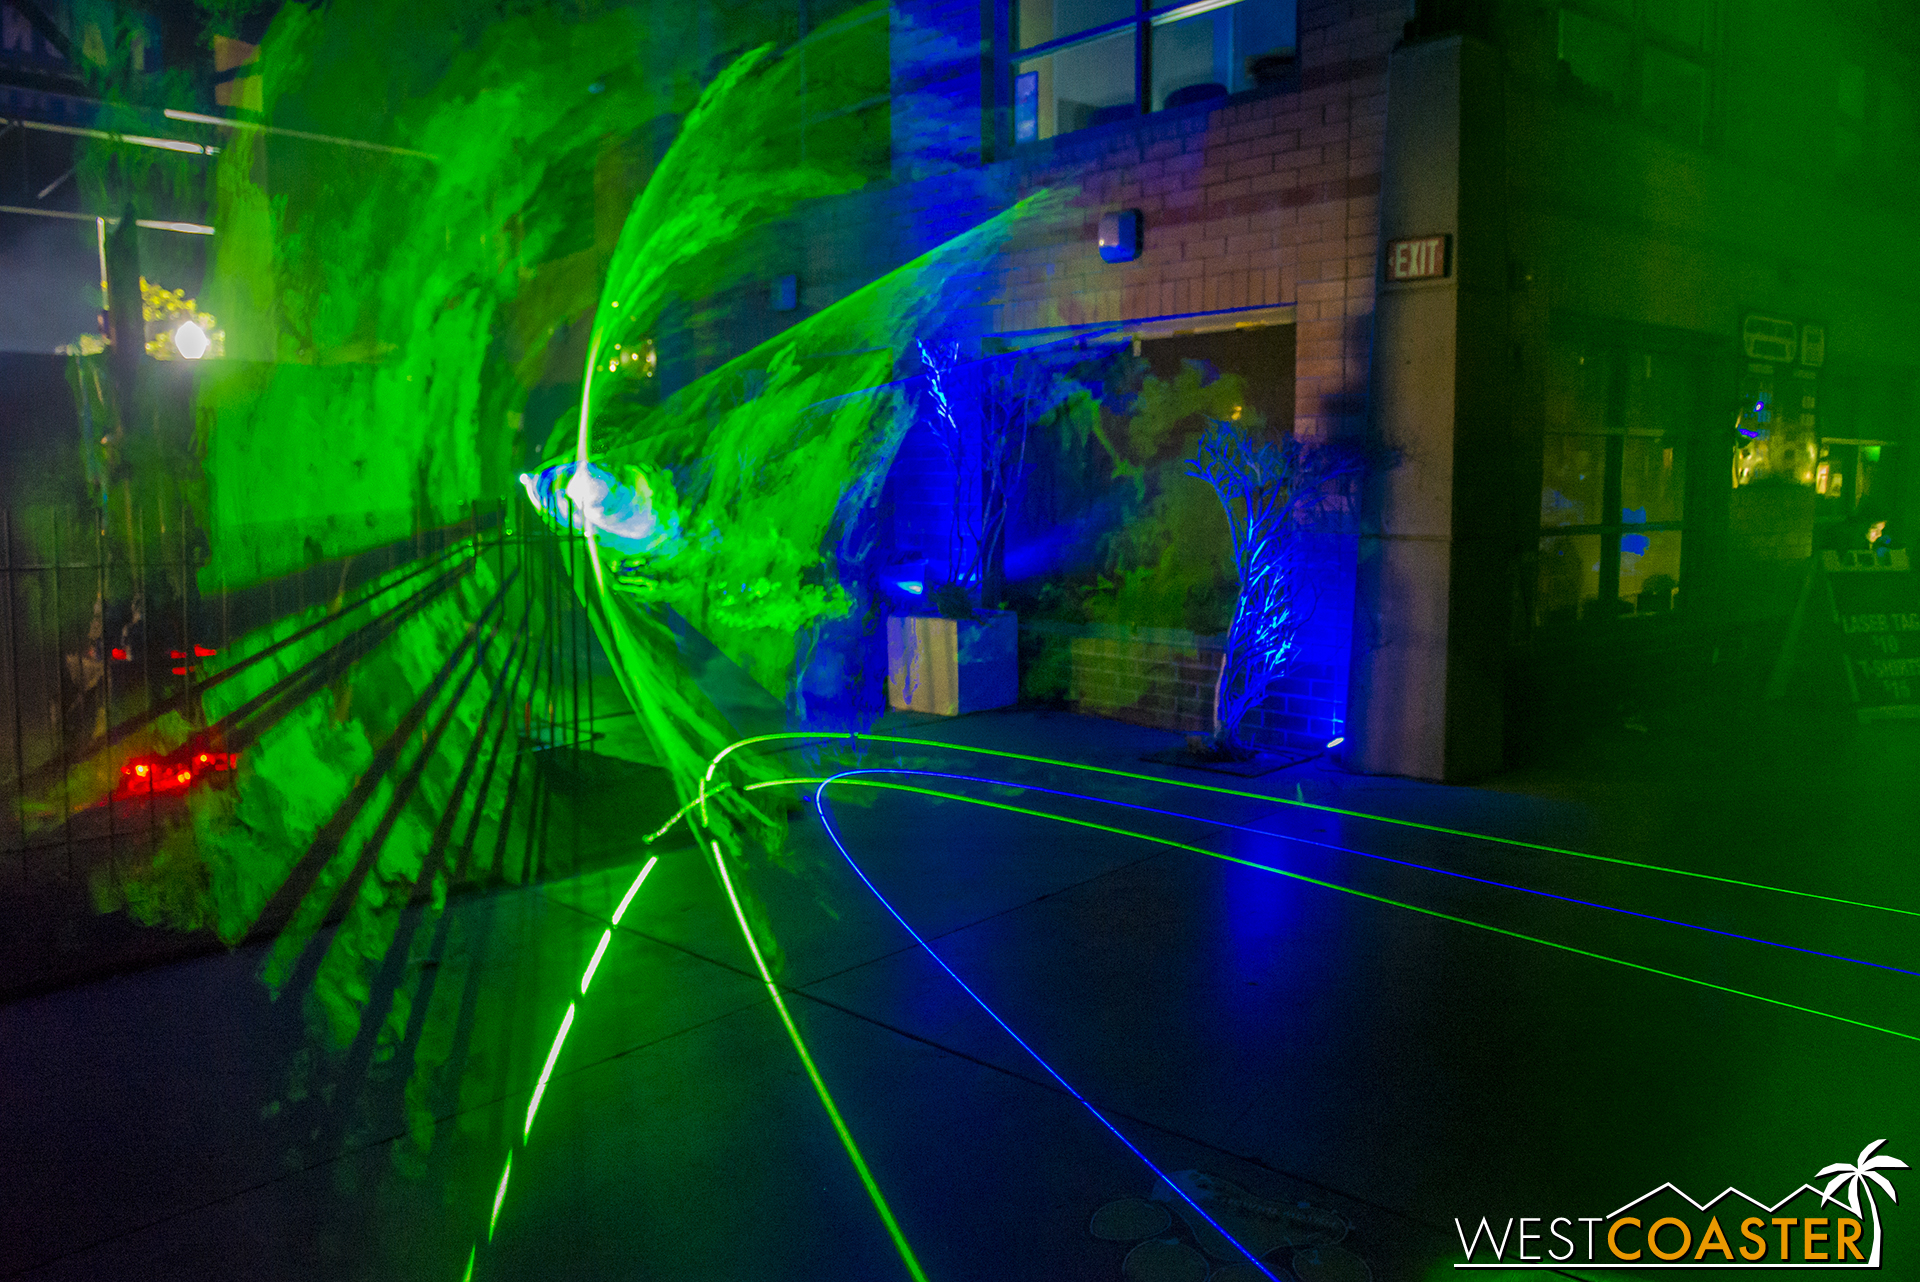 A (what else) green laser vortex effect provided some eye candy inside the entrance of the haunt.